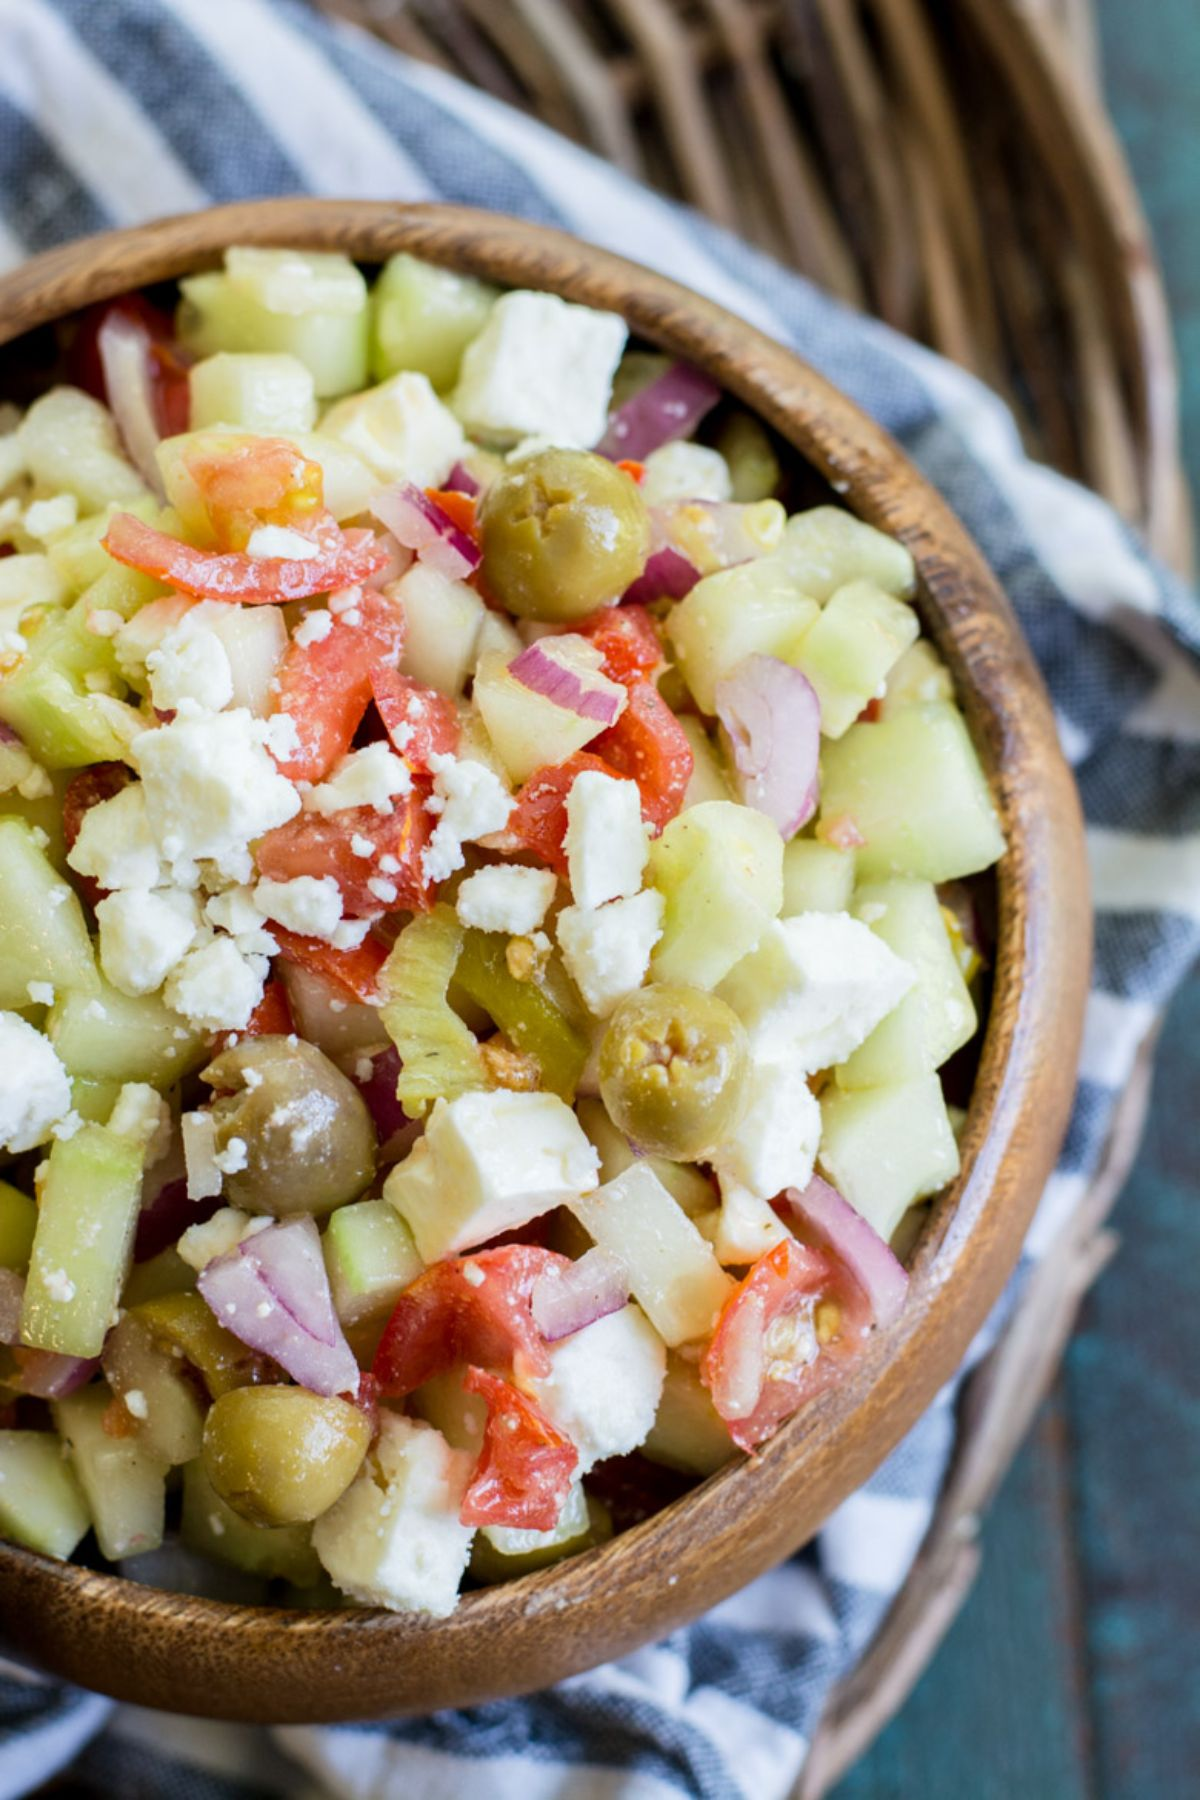 On a blurred wicker table is a bue and white striped cloth. On top of that is a round wooden bowl filled with cucumber salald topped with crumbled feta